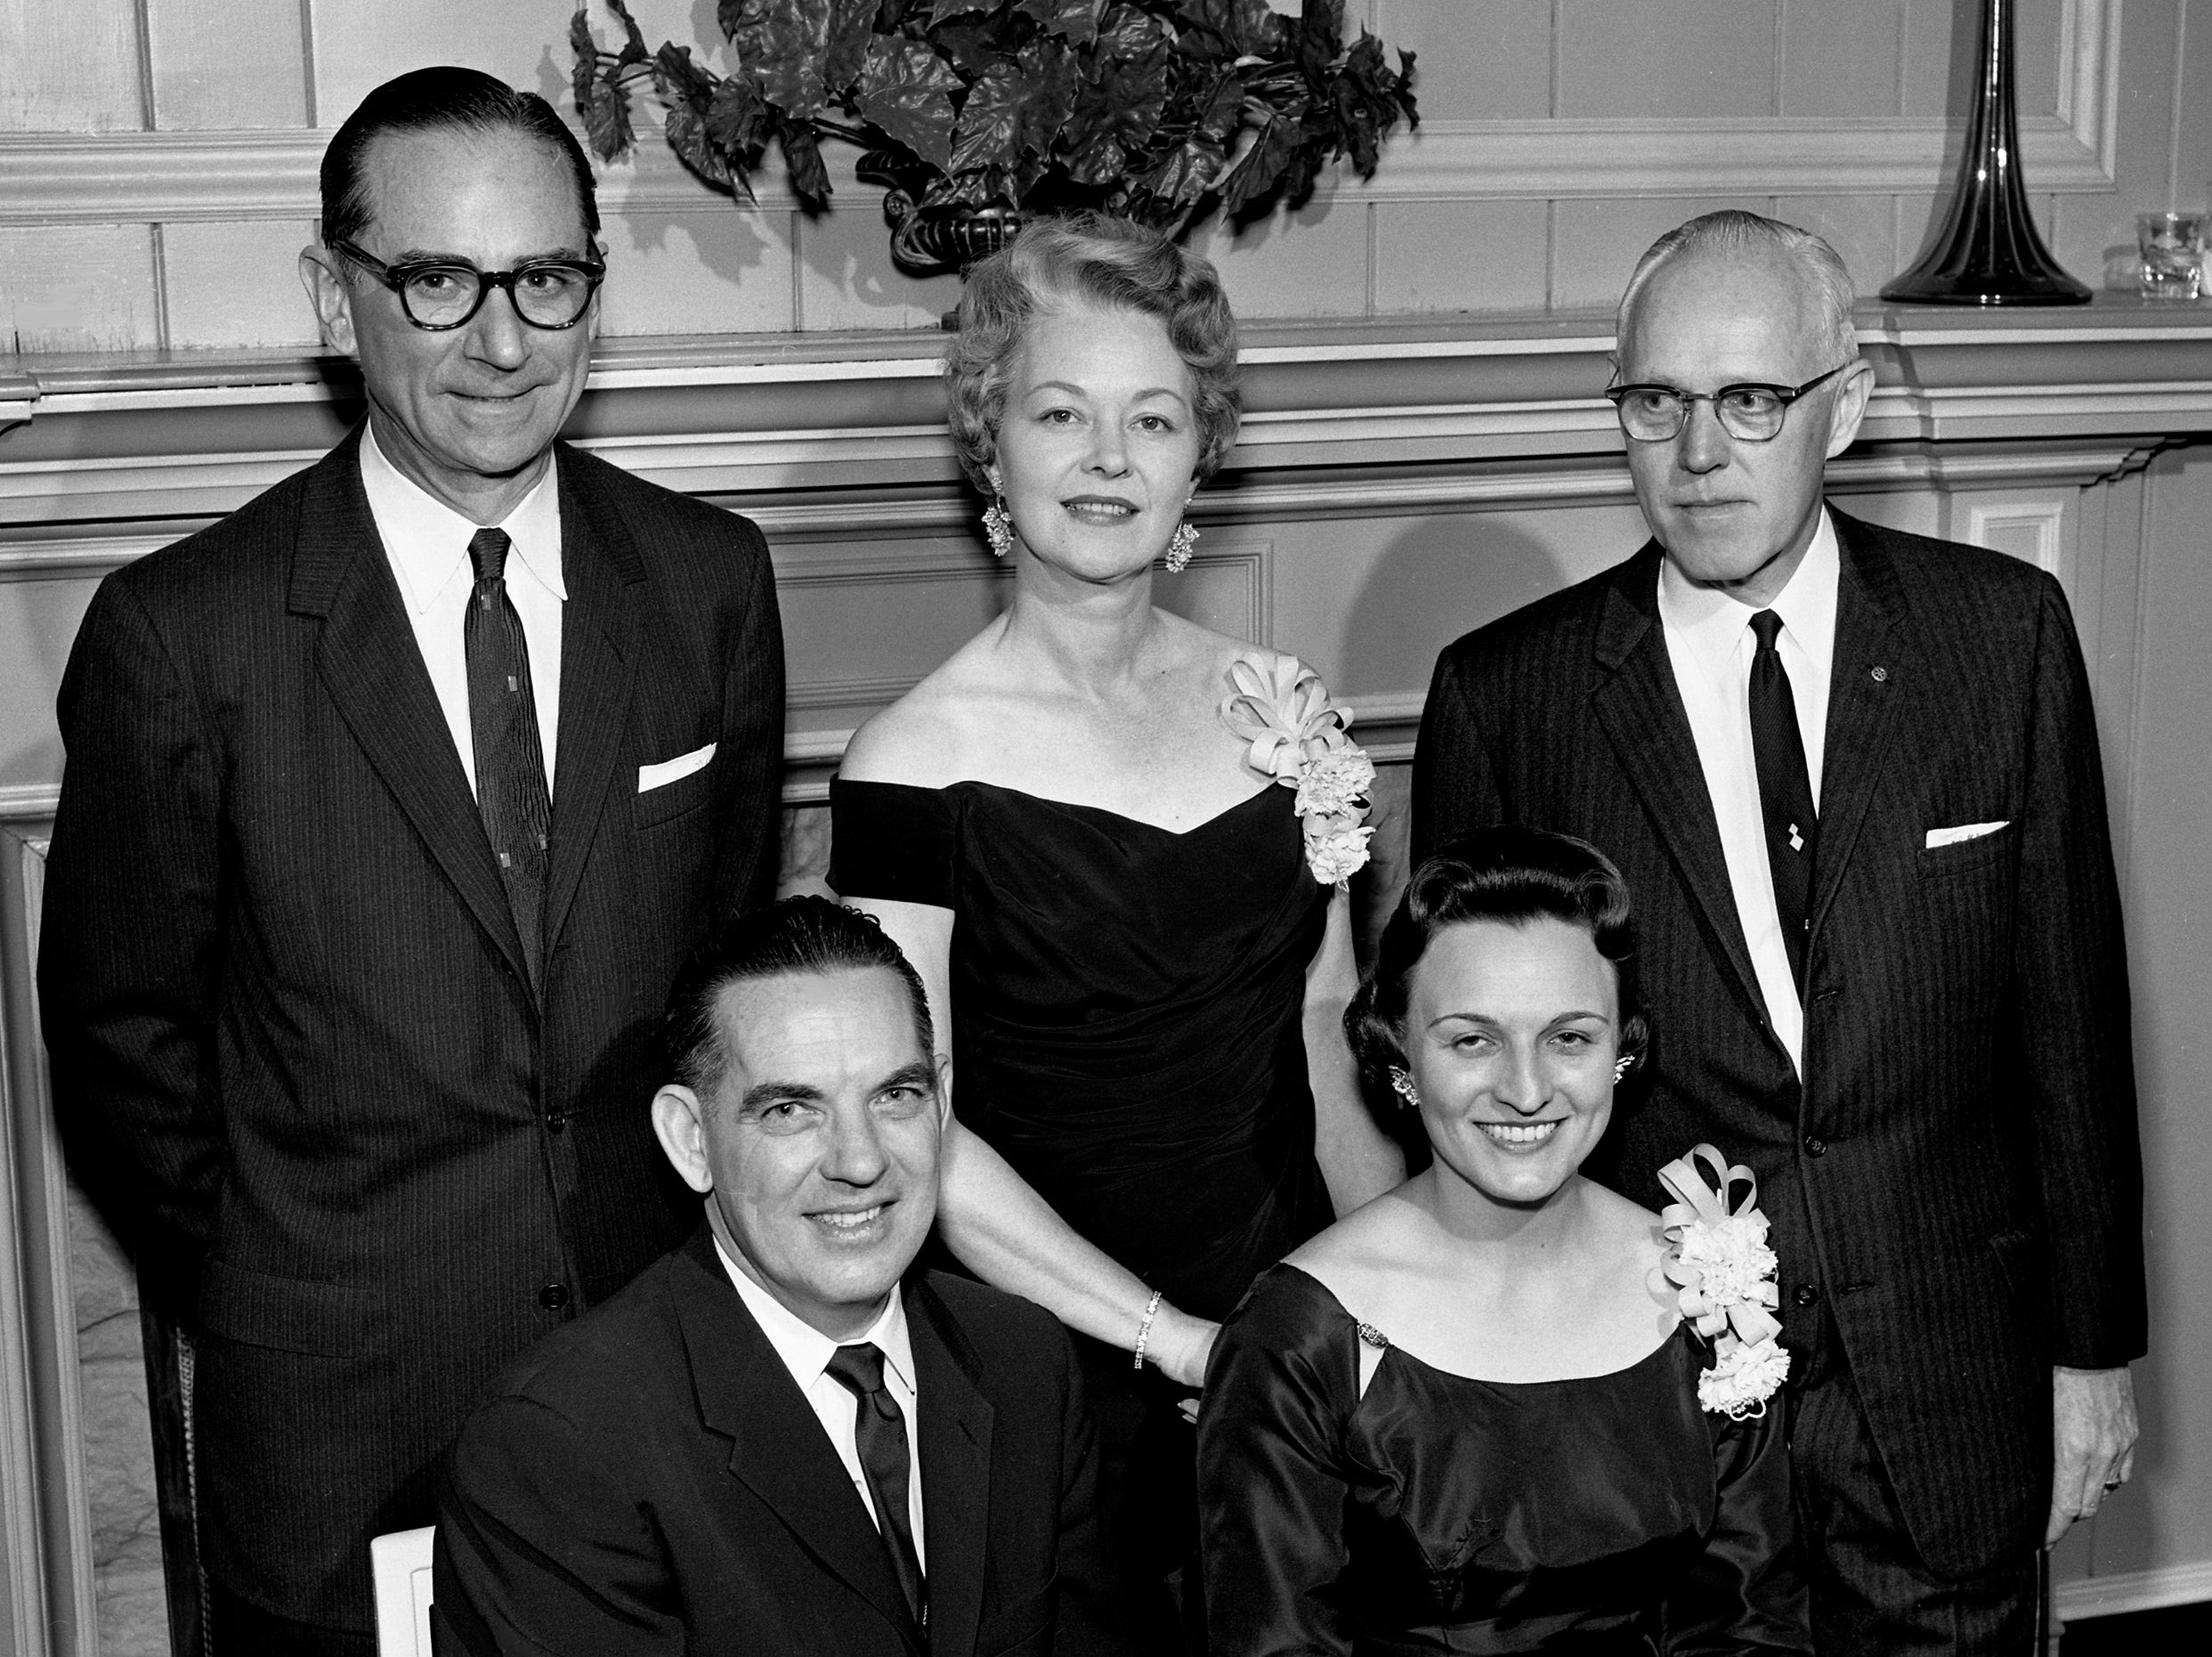 Members of the Rotary Club entertaining at a Valentine dinner and dance at Belle Meade Country Club on Feb. 14, 1961, are Mr. and Mrs. T.C. Summers, seated, Mr. and Mrs. Dan Maddox, standing left, and Jack Massey.